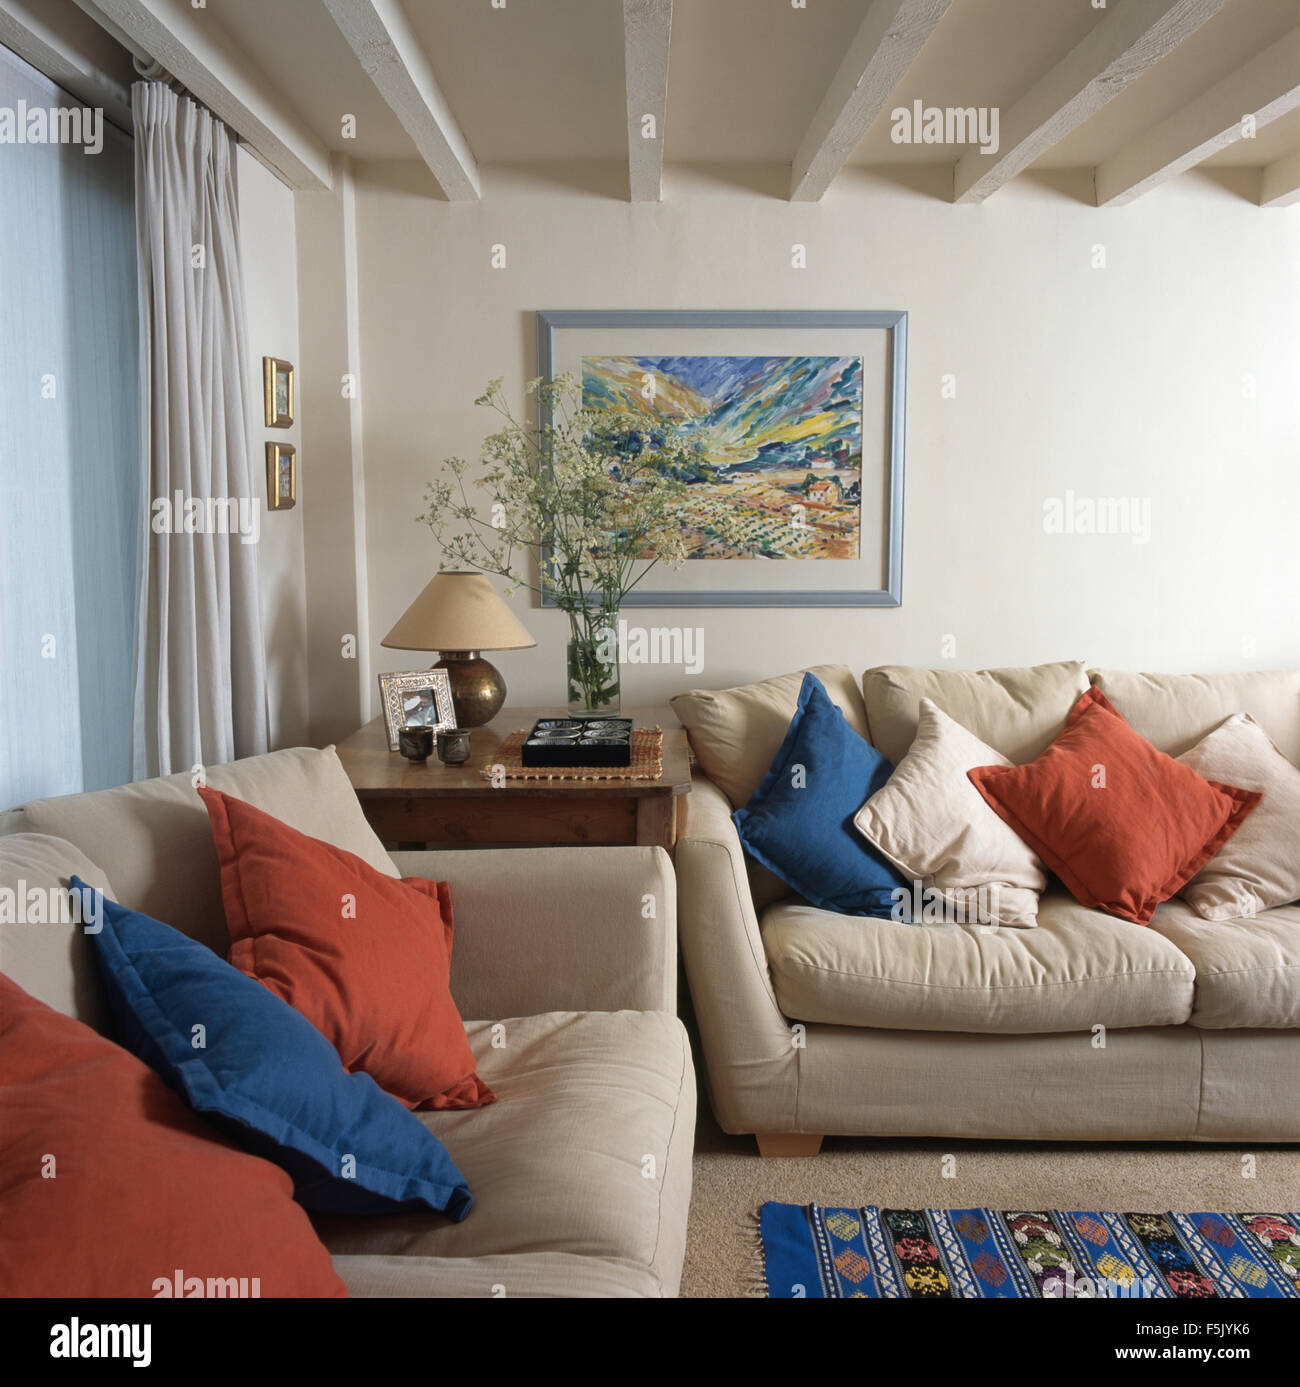 blue and red cushions on cream sofas in a traditional living room stock photo 89541962 alamy. Black Bedroom Furniture Sets. Home Design Ideas